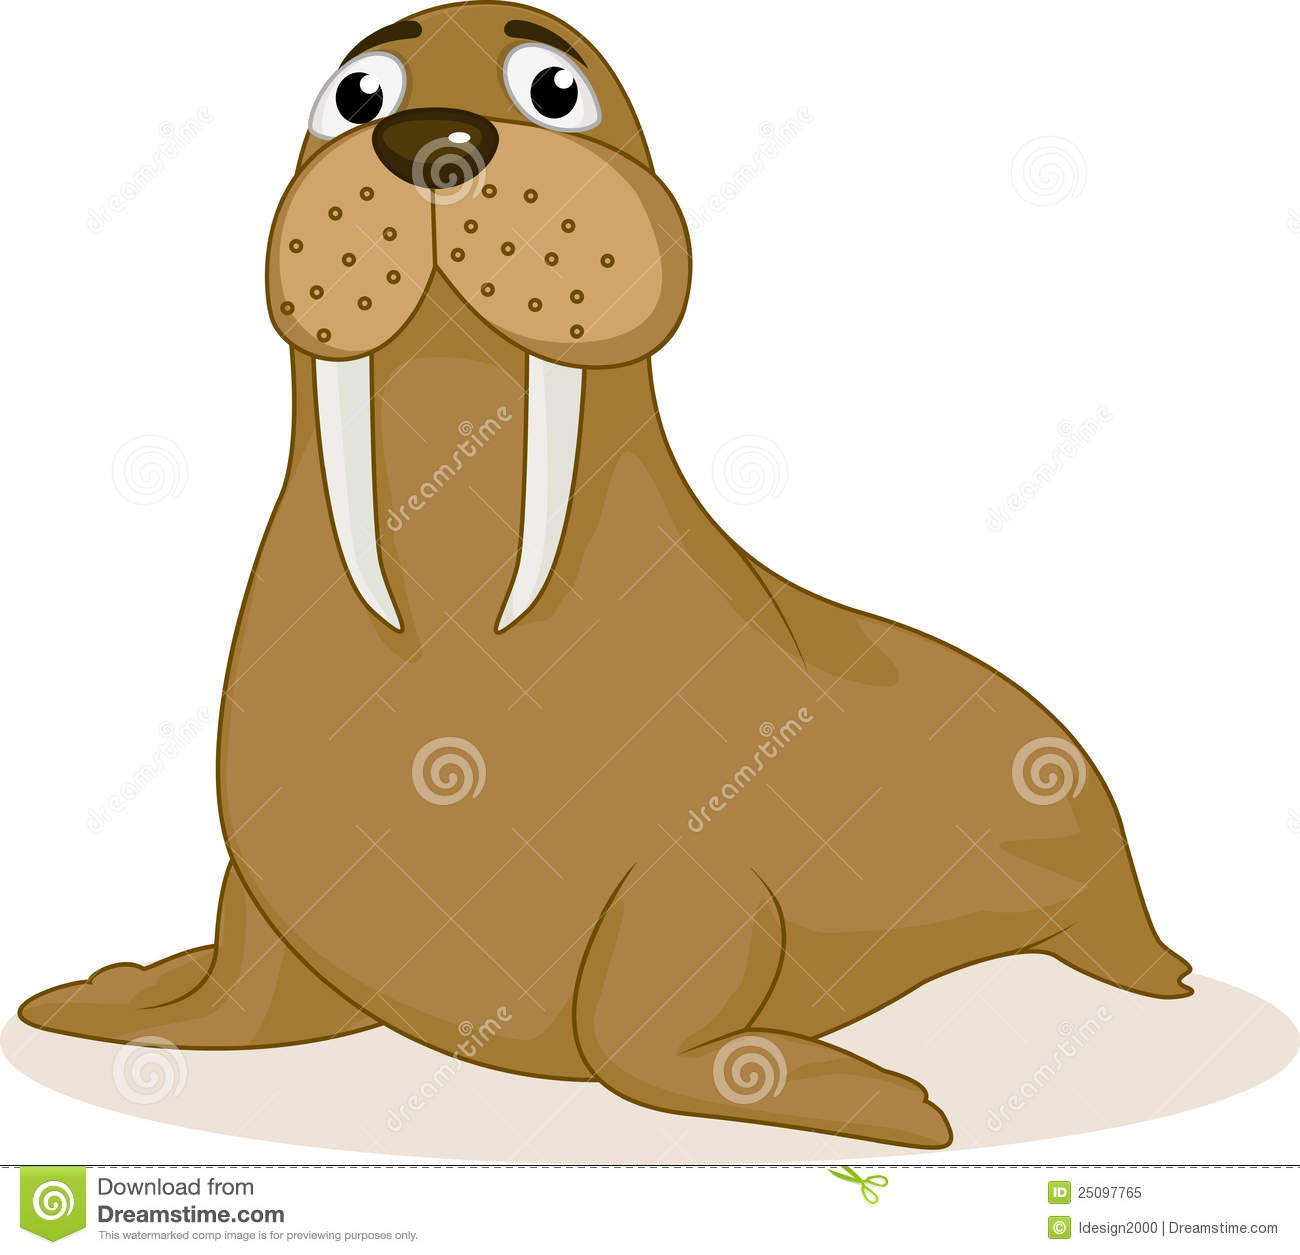 Fat walrus cartoon - photo#9